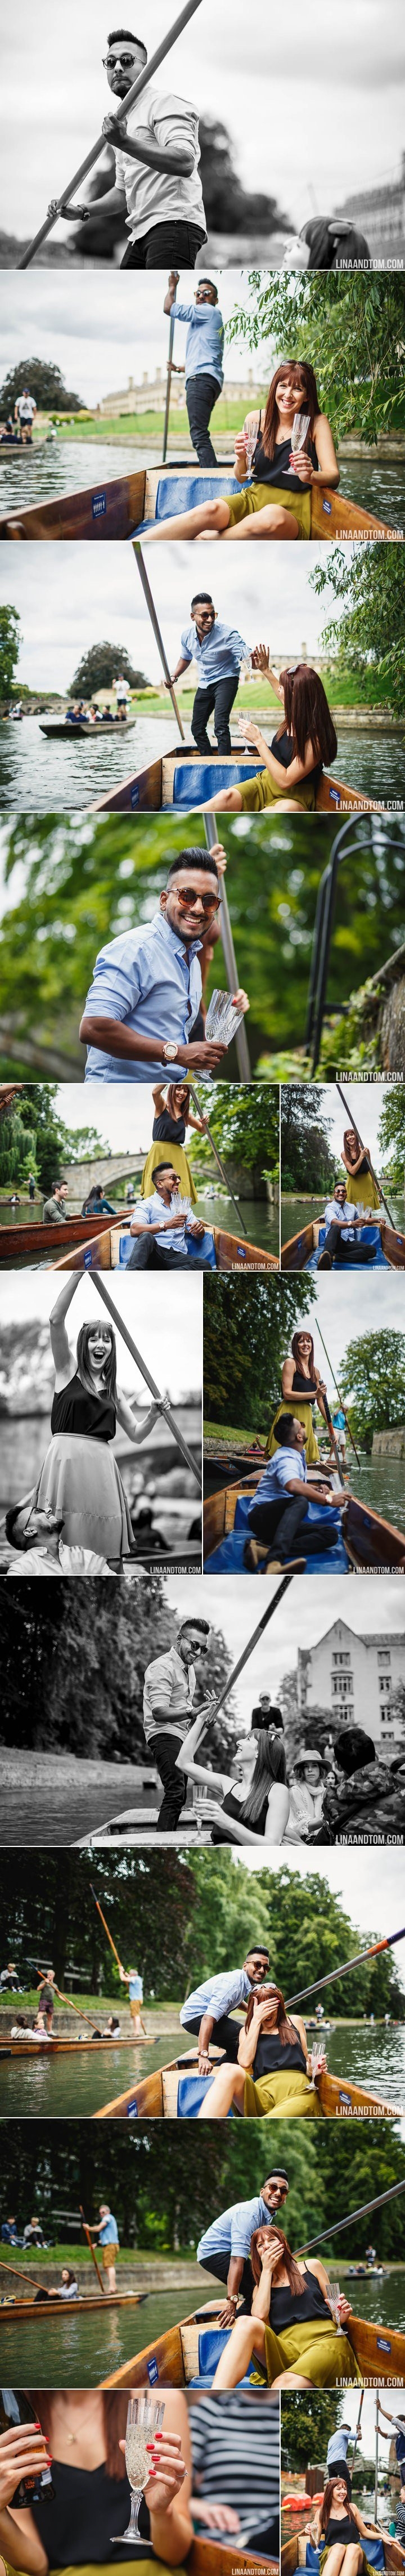 Cambridge Punting Pre-Wedding Shoot Engagement